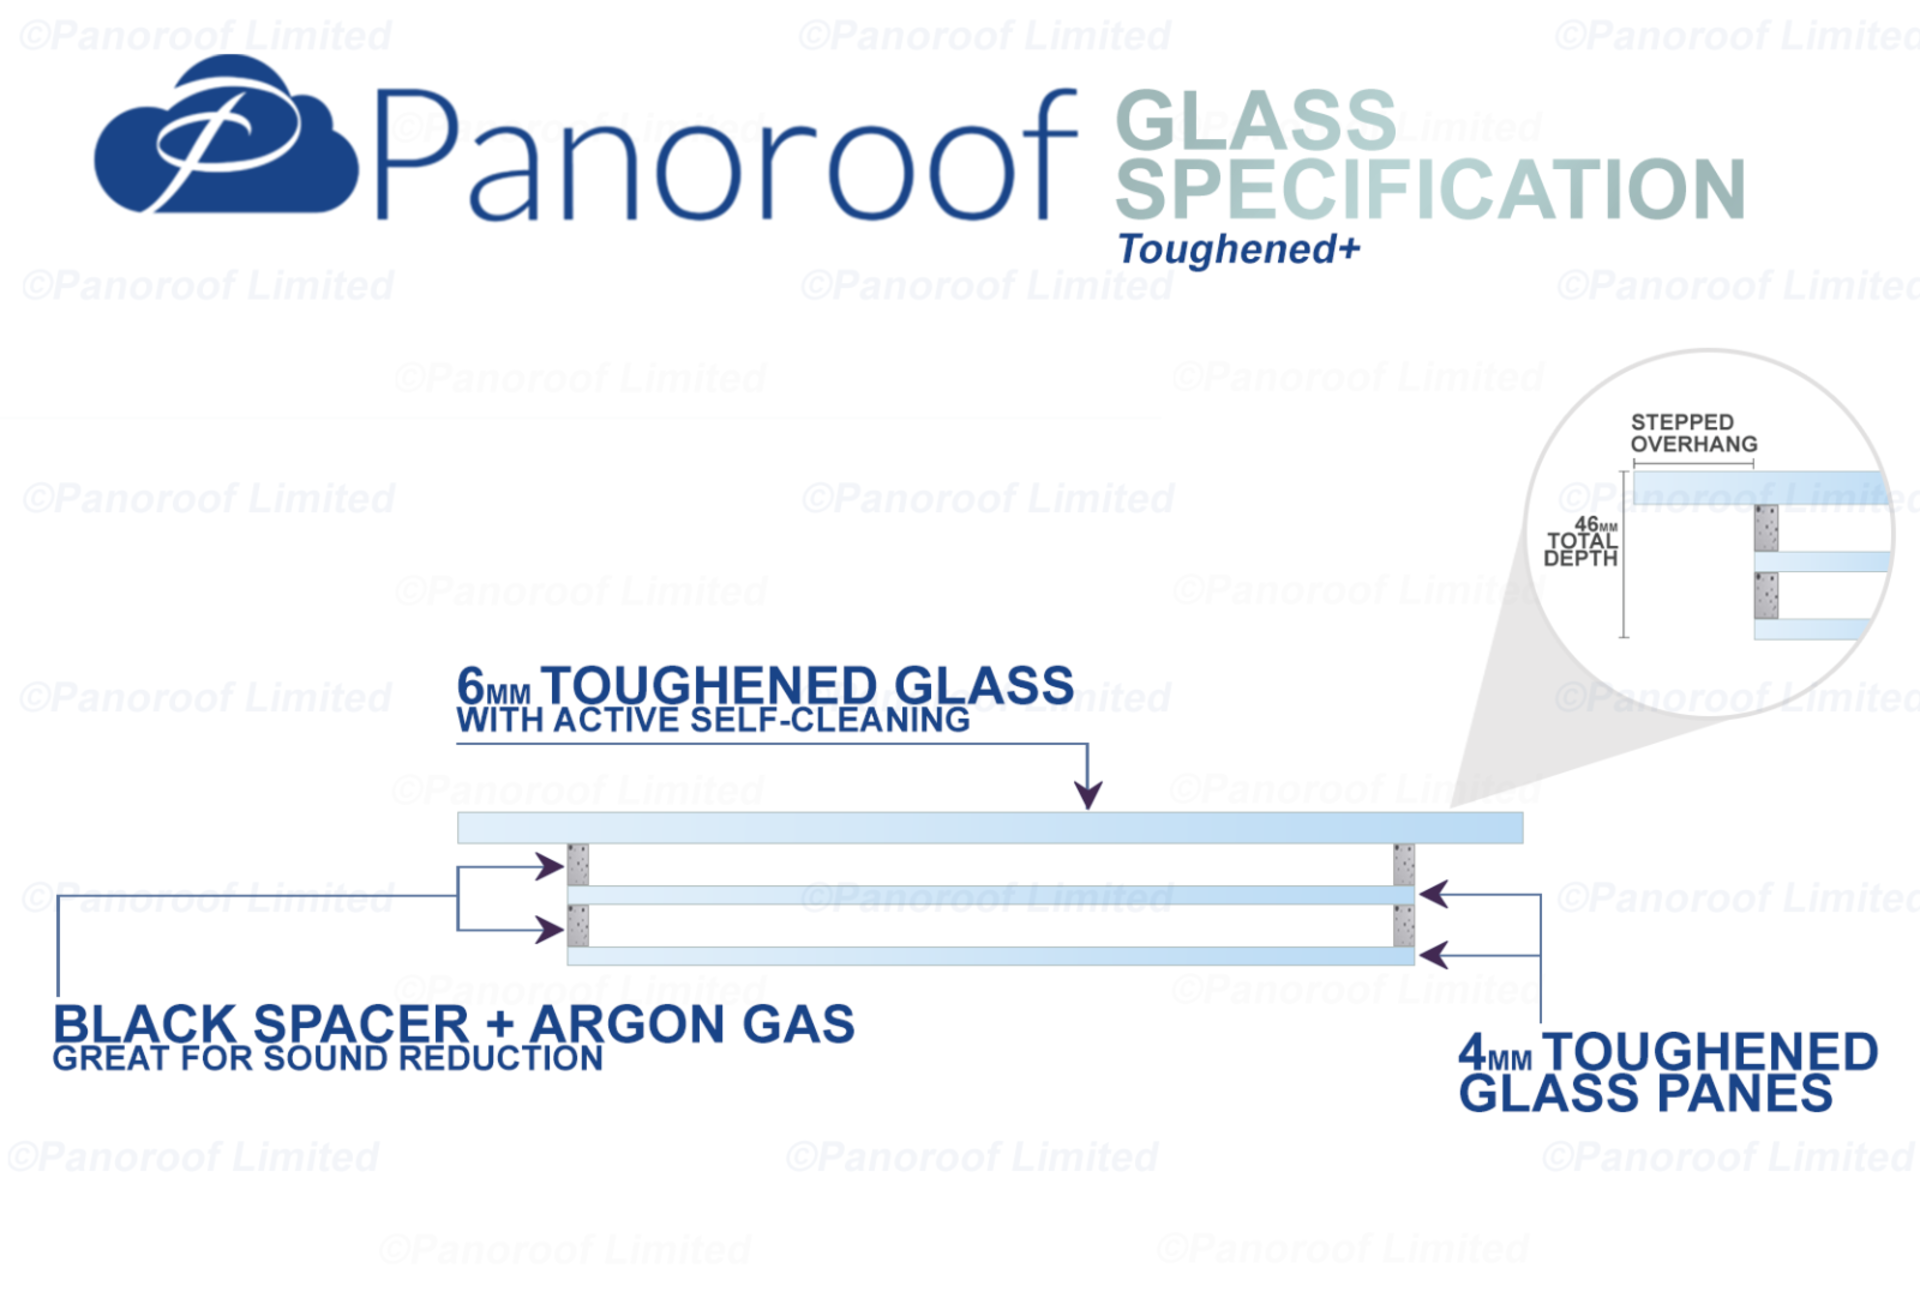 """""""""""""""Panoroof Triple Glazed Self Cleaning 1000x3000mm (inside Size Visable glass area) Seamless - Image 5 of 6"""